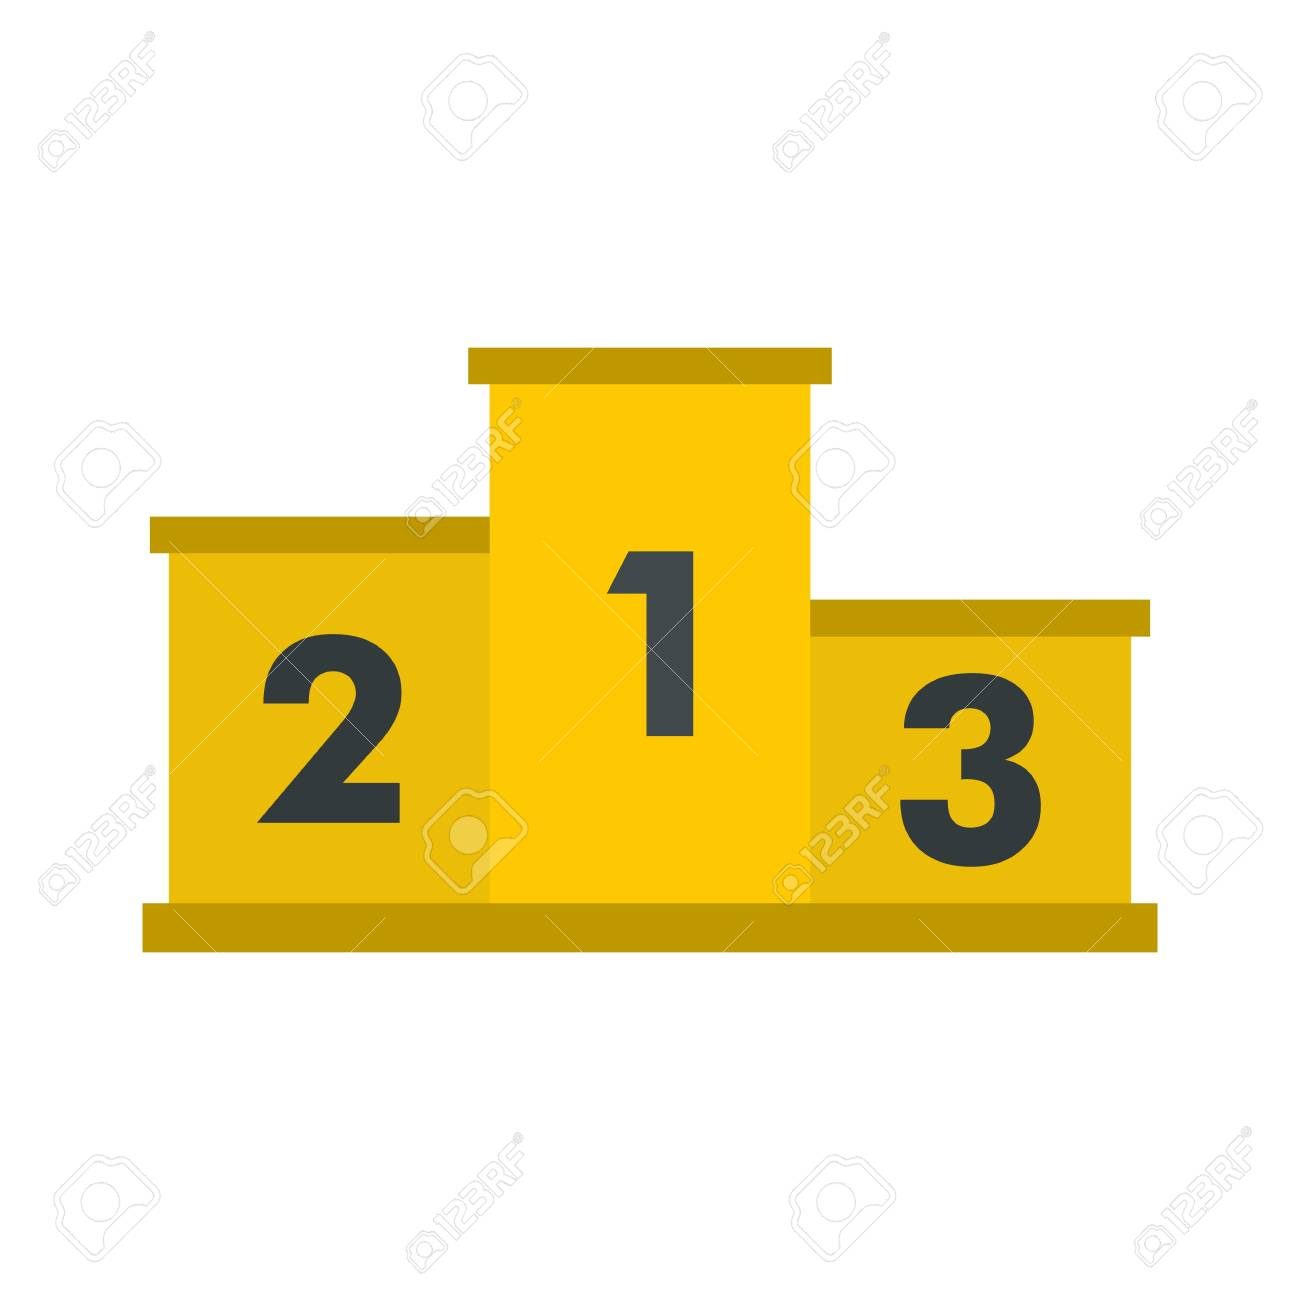 Yellow Podium Winners Icon Flat Style Royalty Free Cliparts Vectors And Stock Illustration Image 73644192